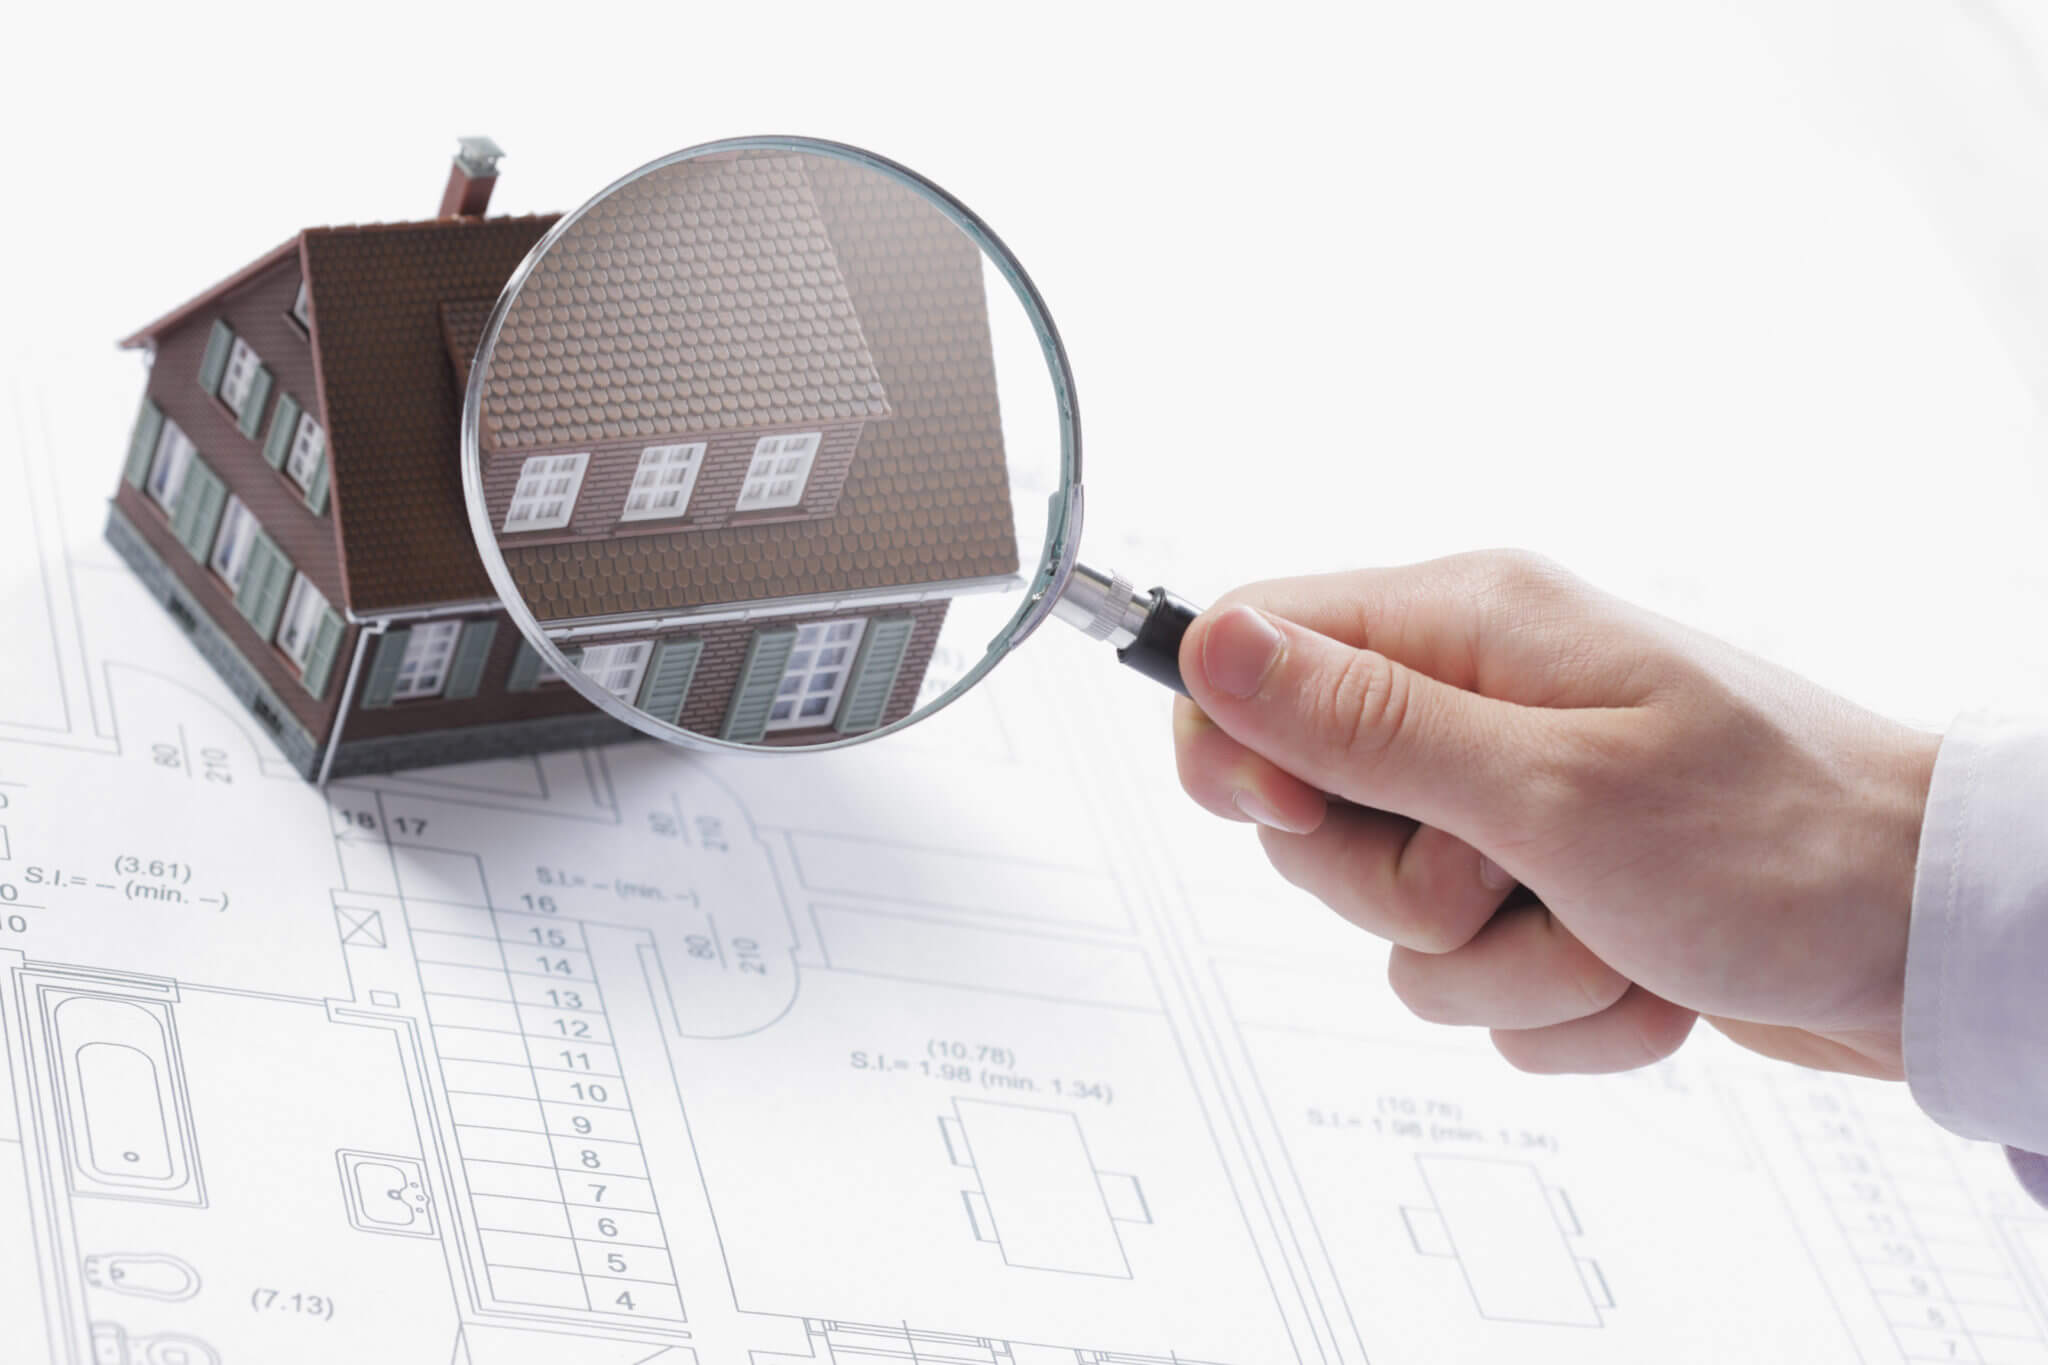 Due diligence on a real estate property